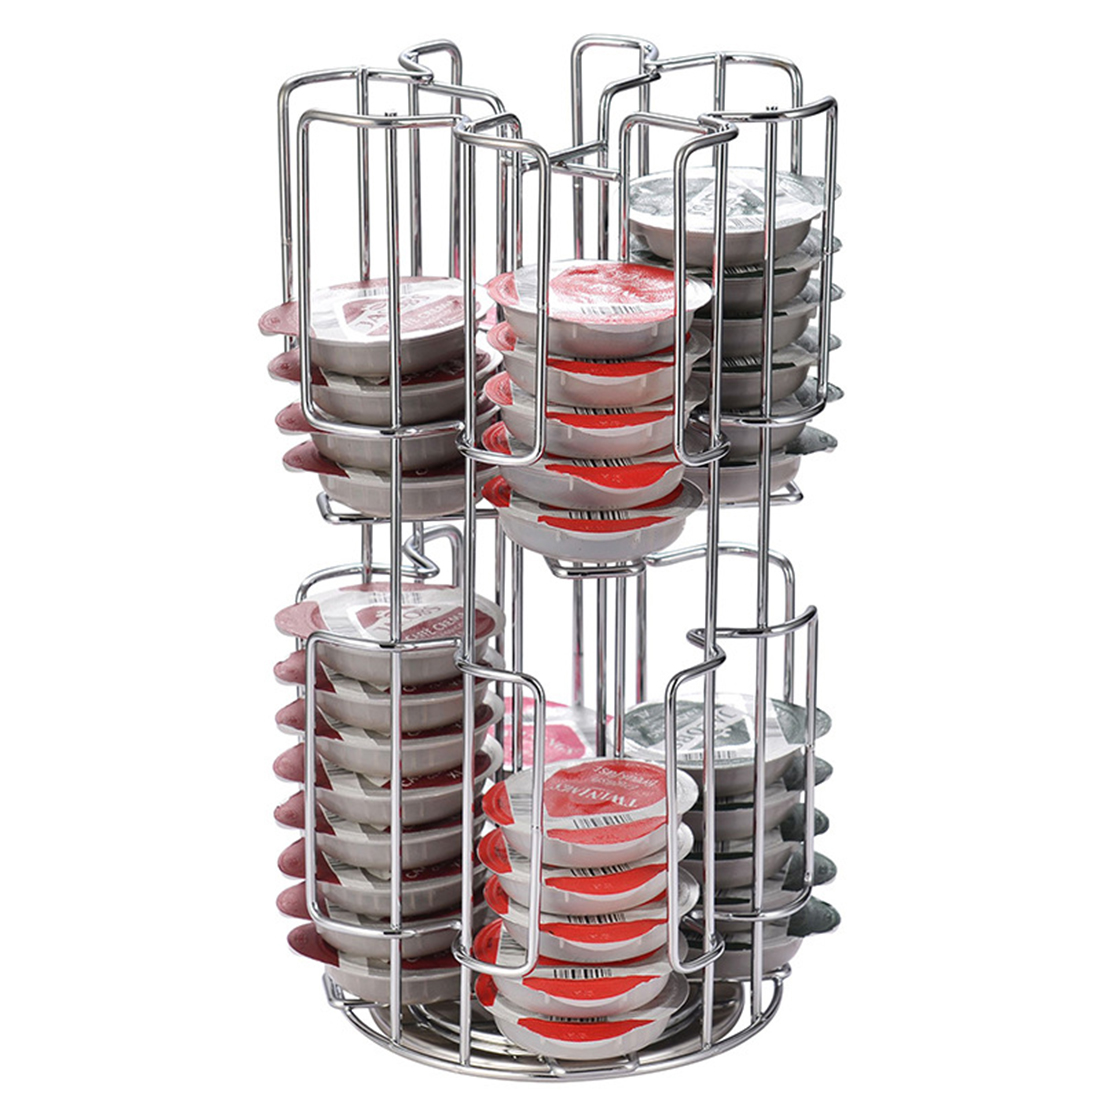 2020 New Simple Style Rotating Capsule Coffee Pods Holder Storage Rack for 64 Tassimo Capsules|Coffeeware Sets| |  - title=